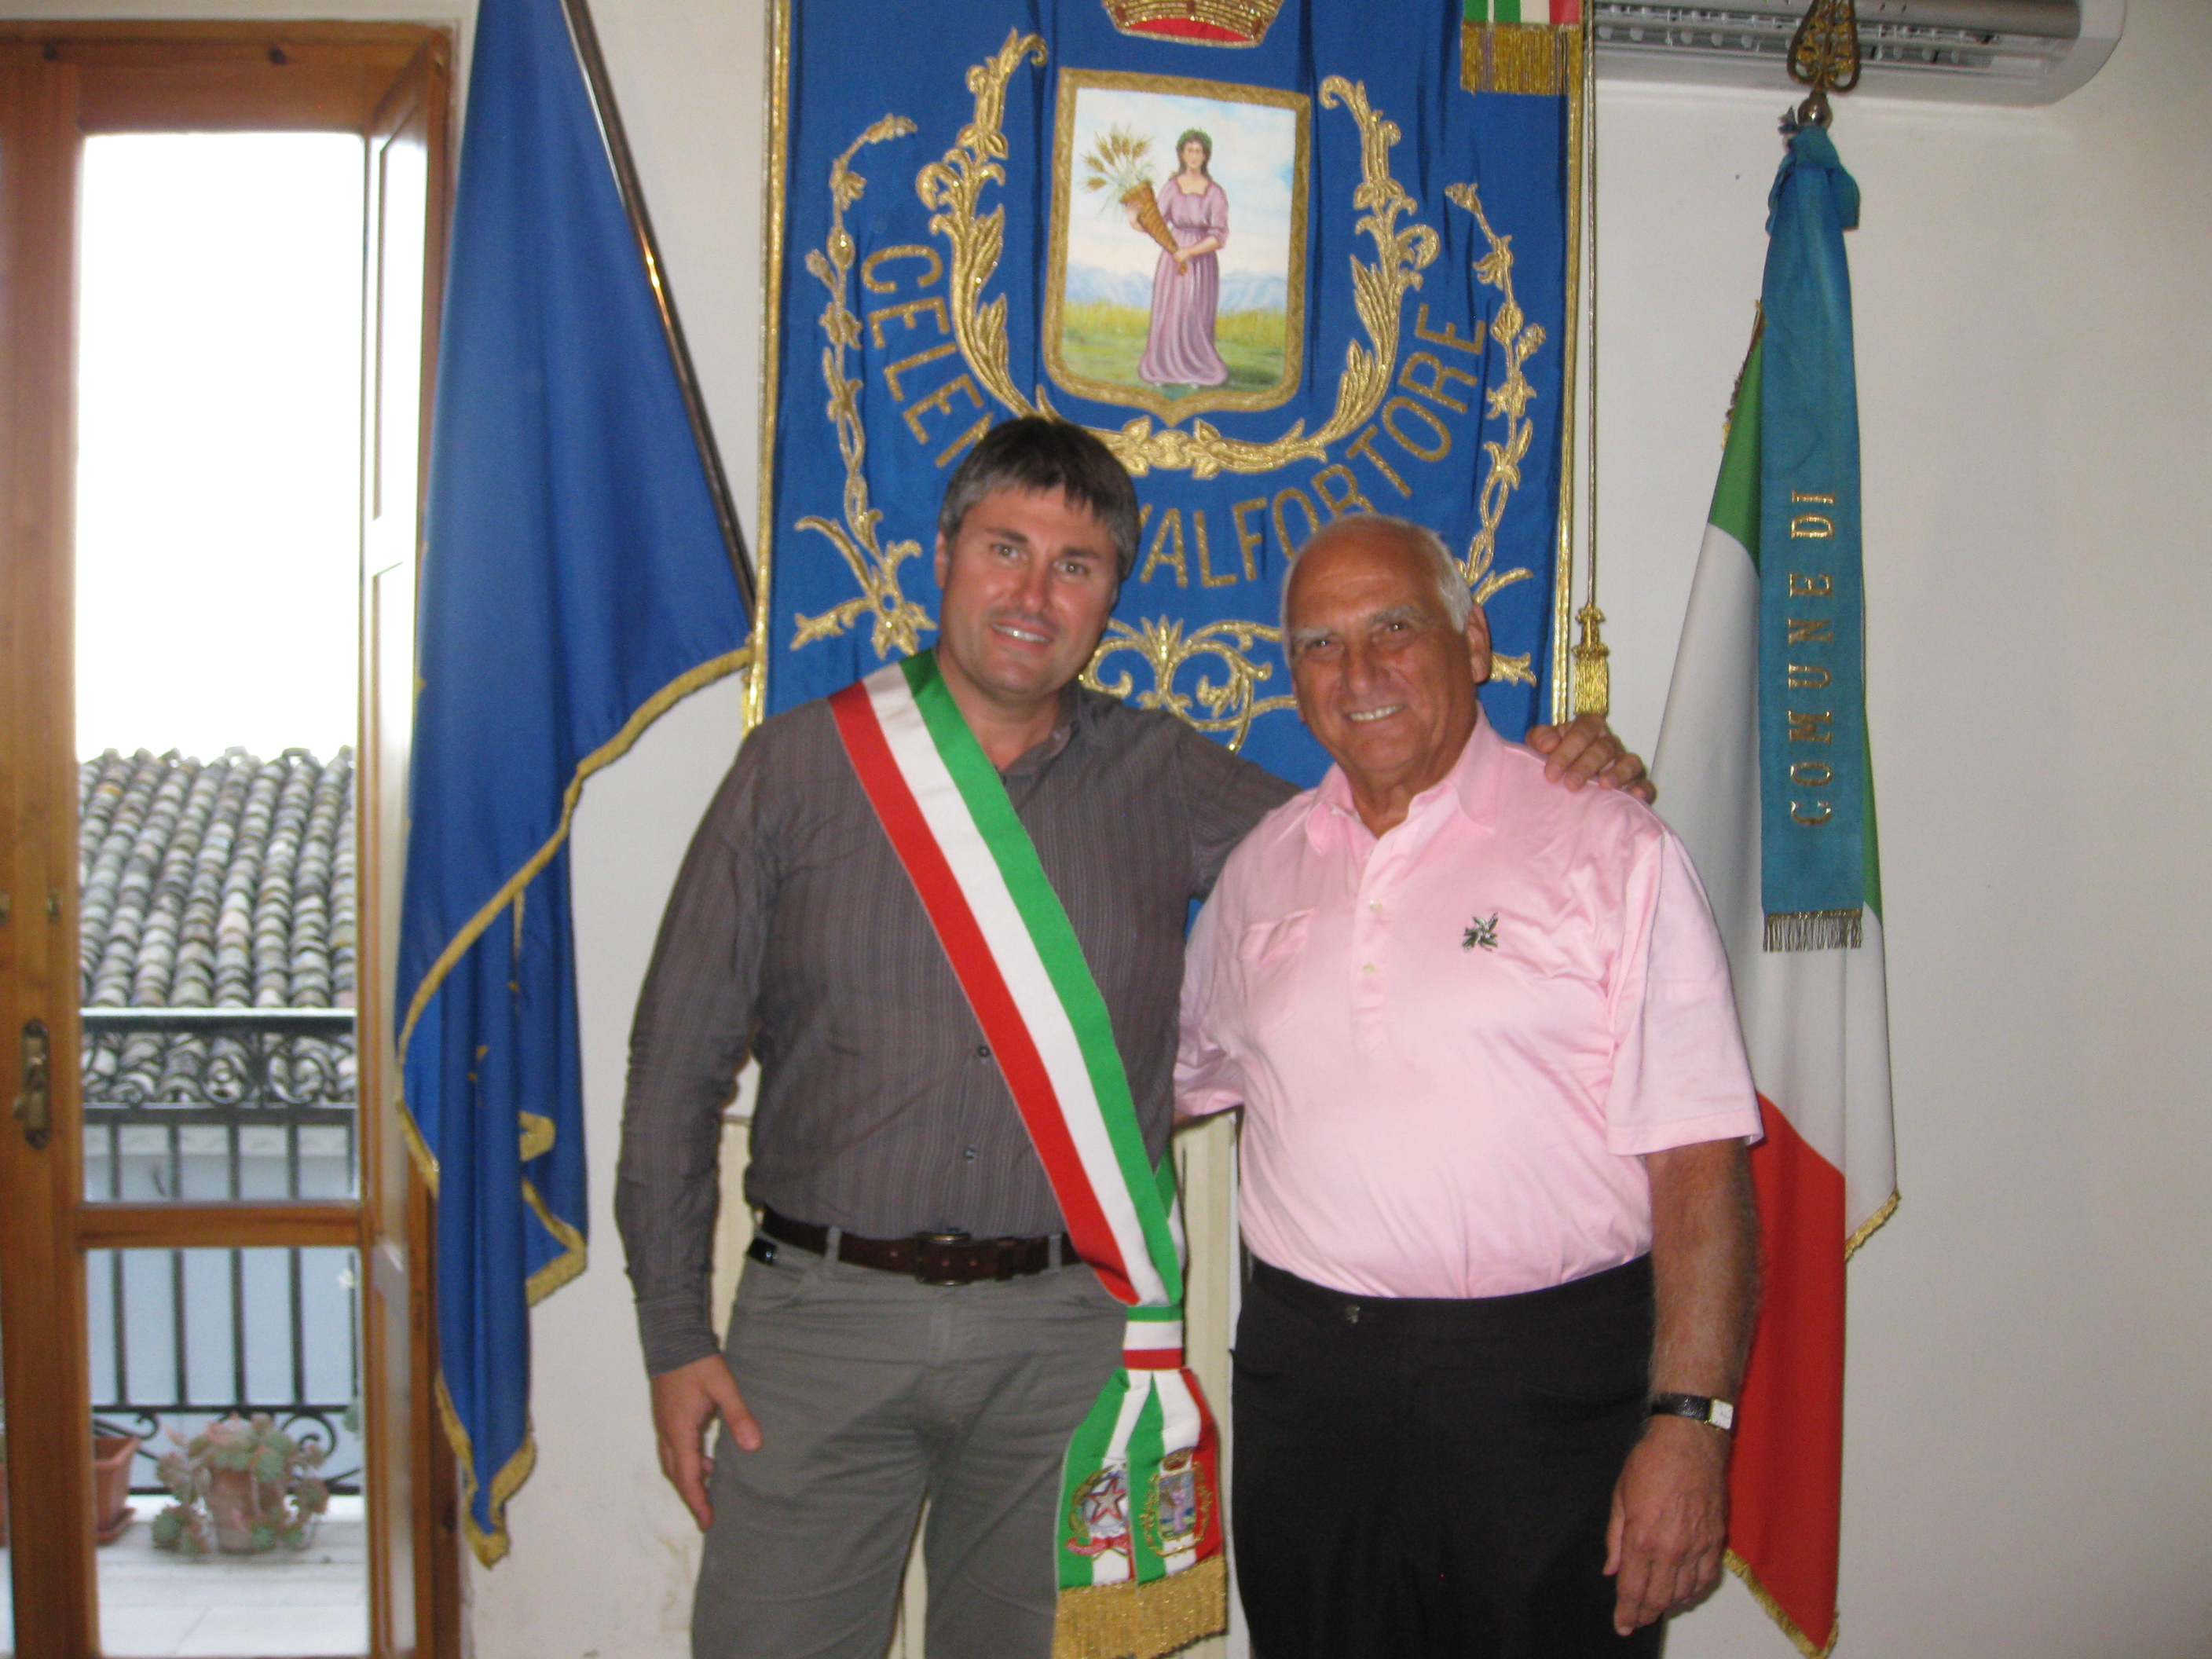 Richard Serluco with Mayor of Celenza